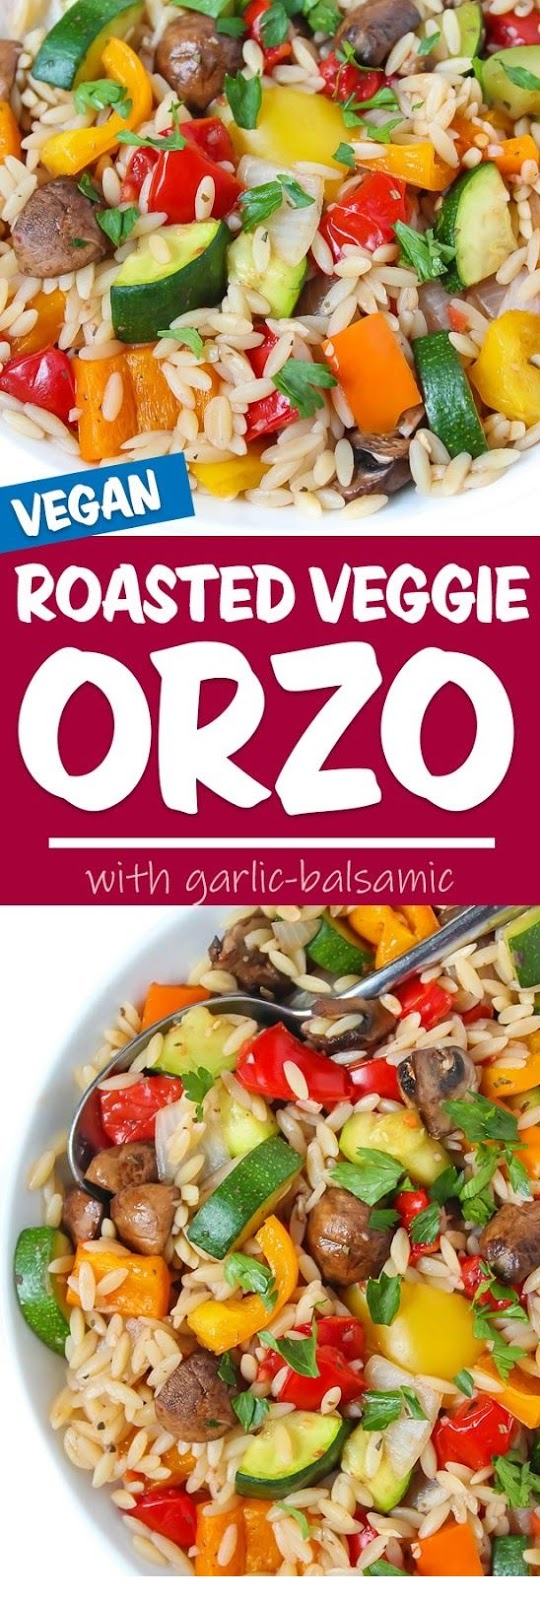 Roasted Vegetable Orzo With Garlic-Balsamic